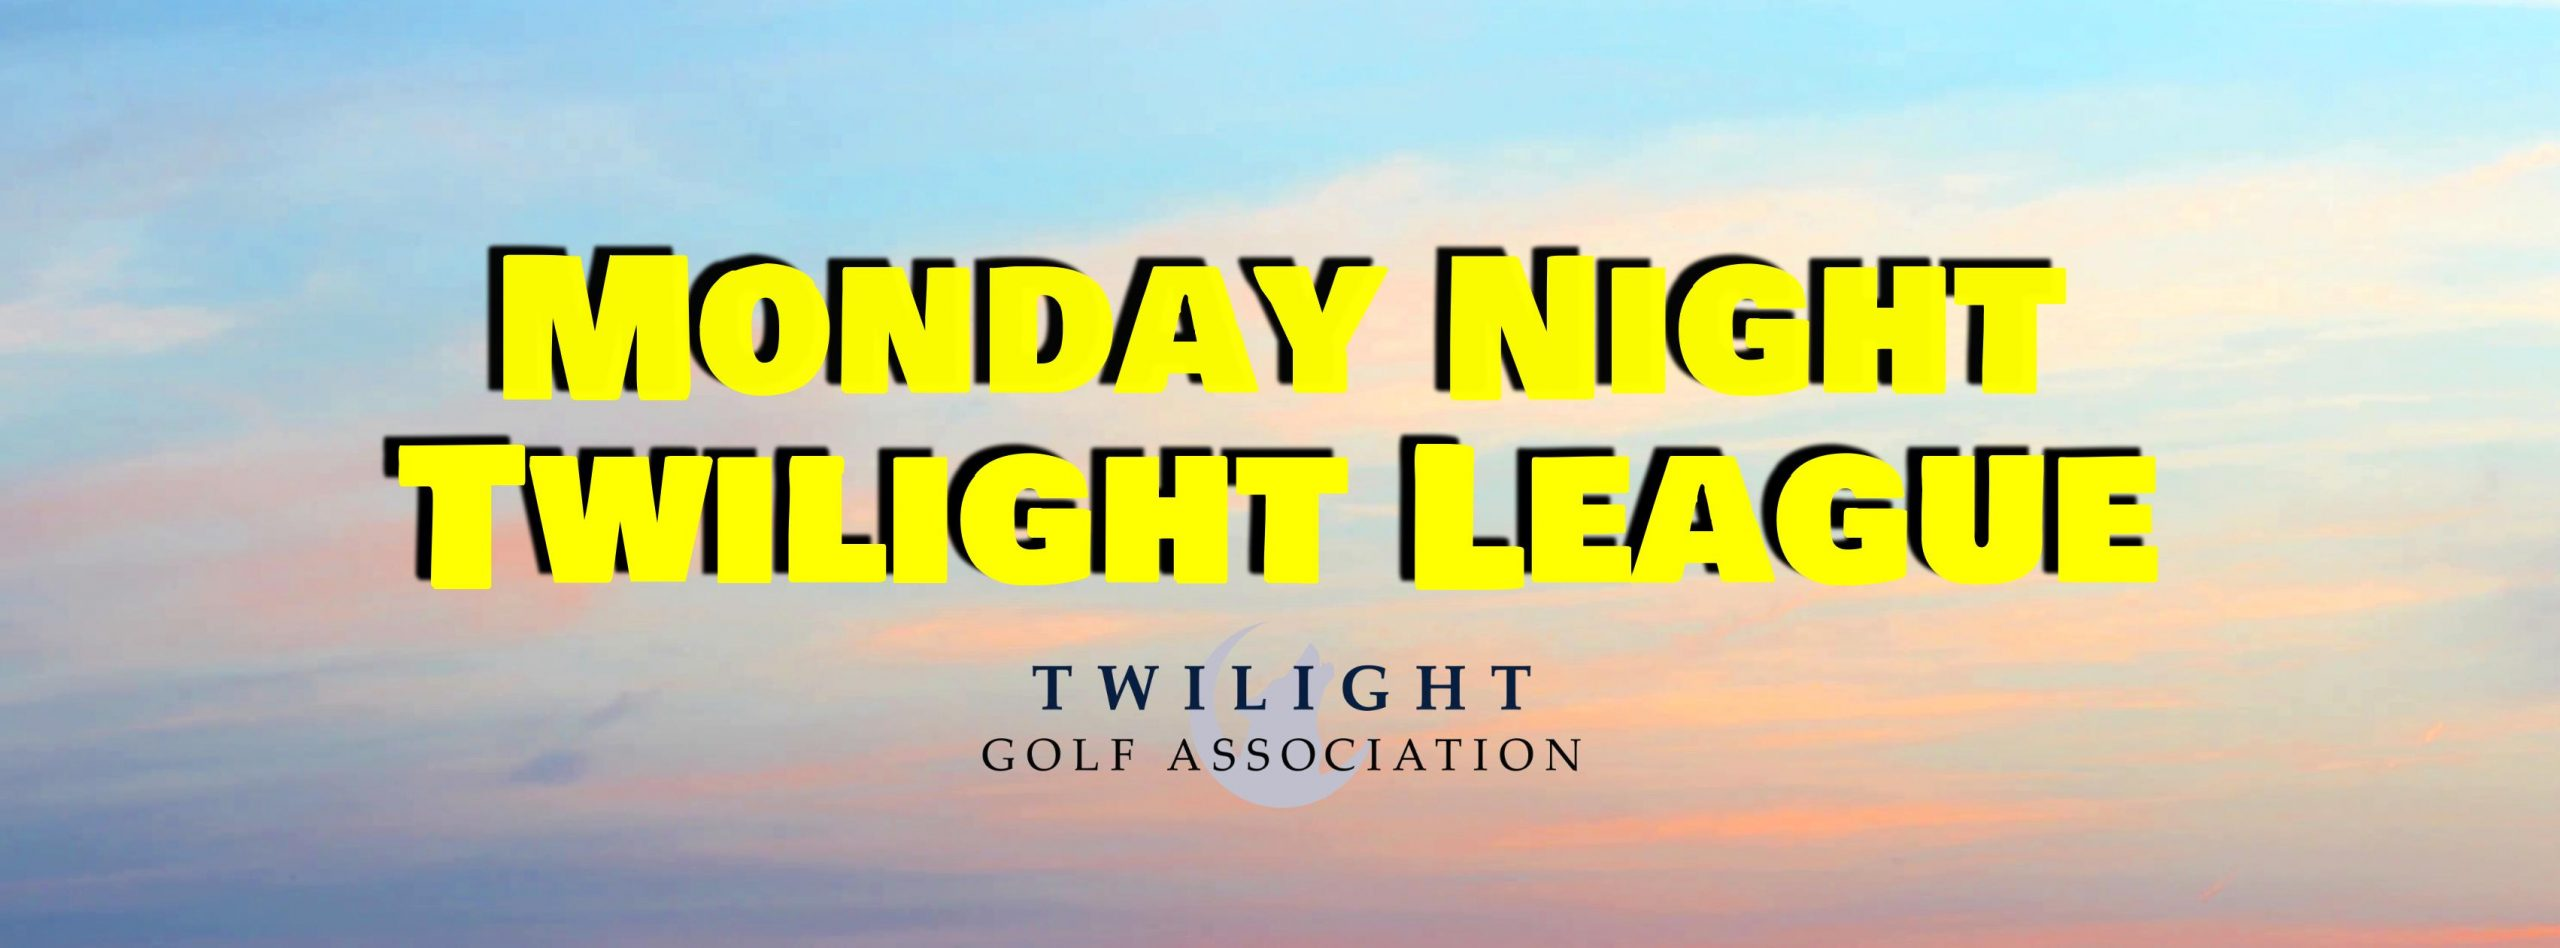 Monday Night Twilight League at Hilliard Lakes Golf Course